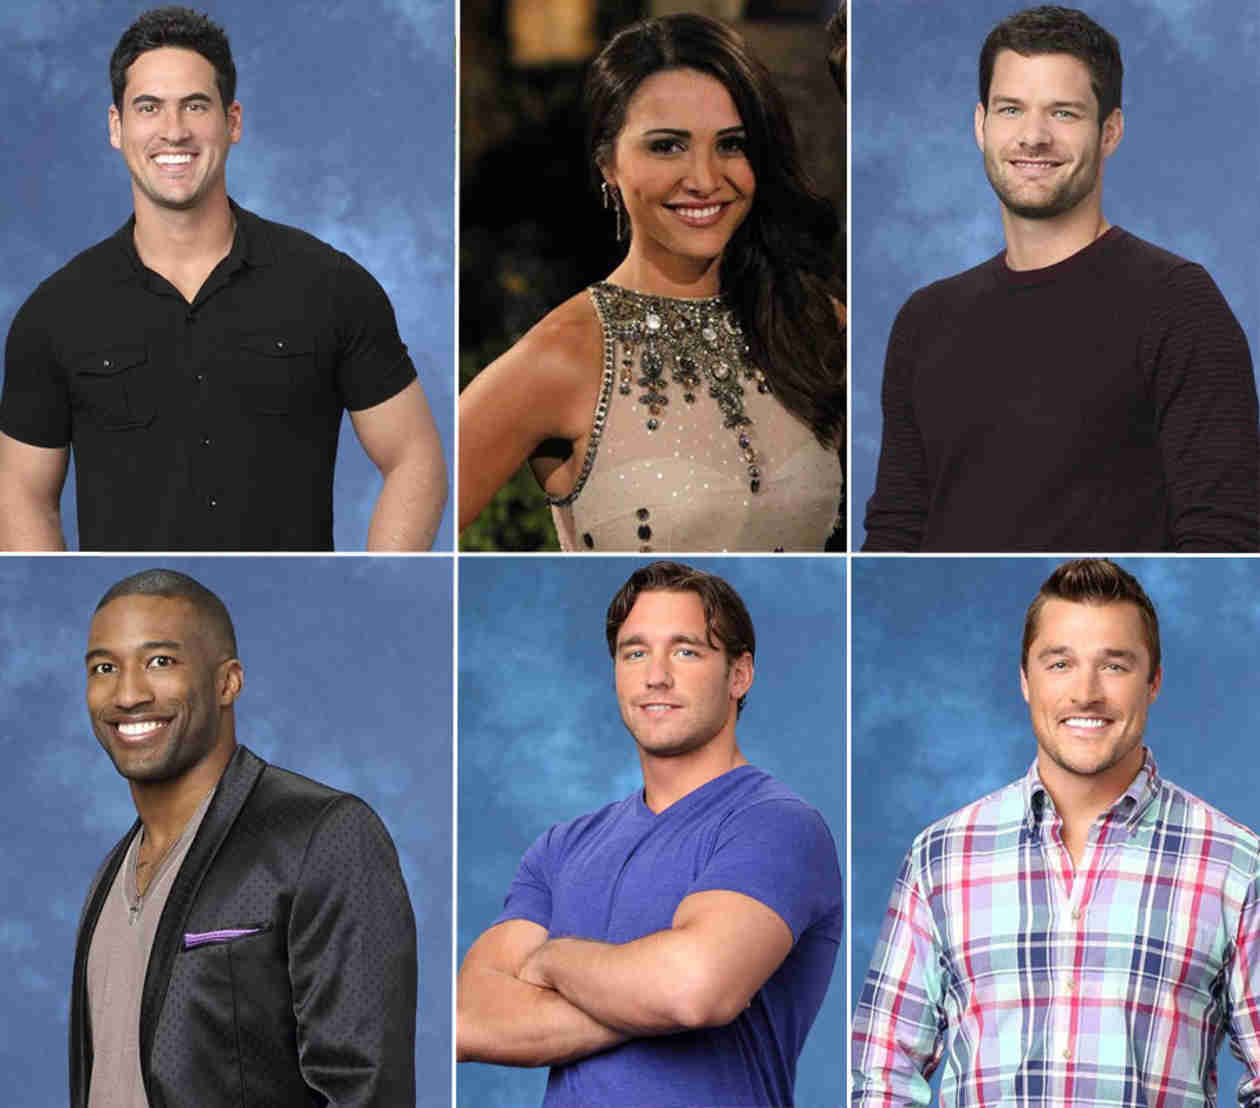 Bachelorette 2014: Chris Harrison Picks 5 Guys to Watch From Season 10!